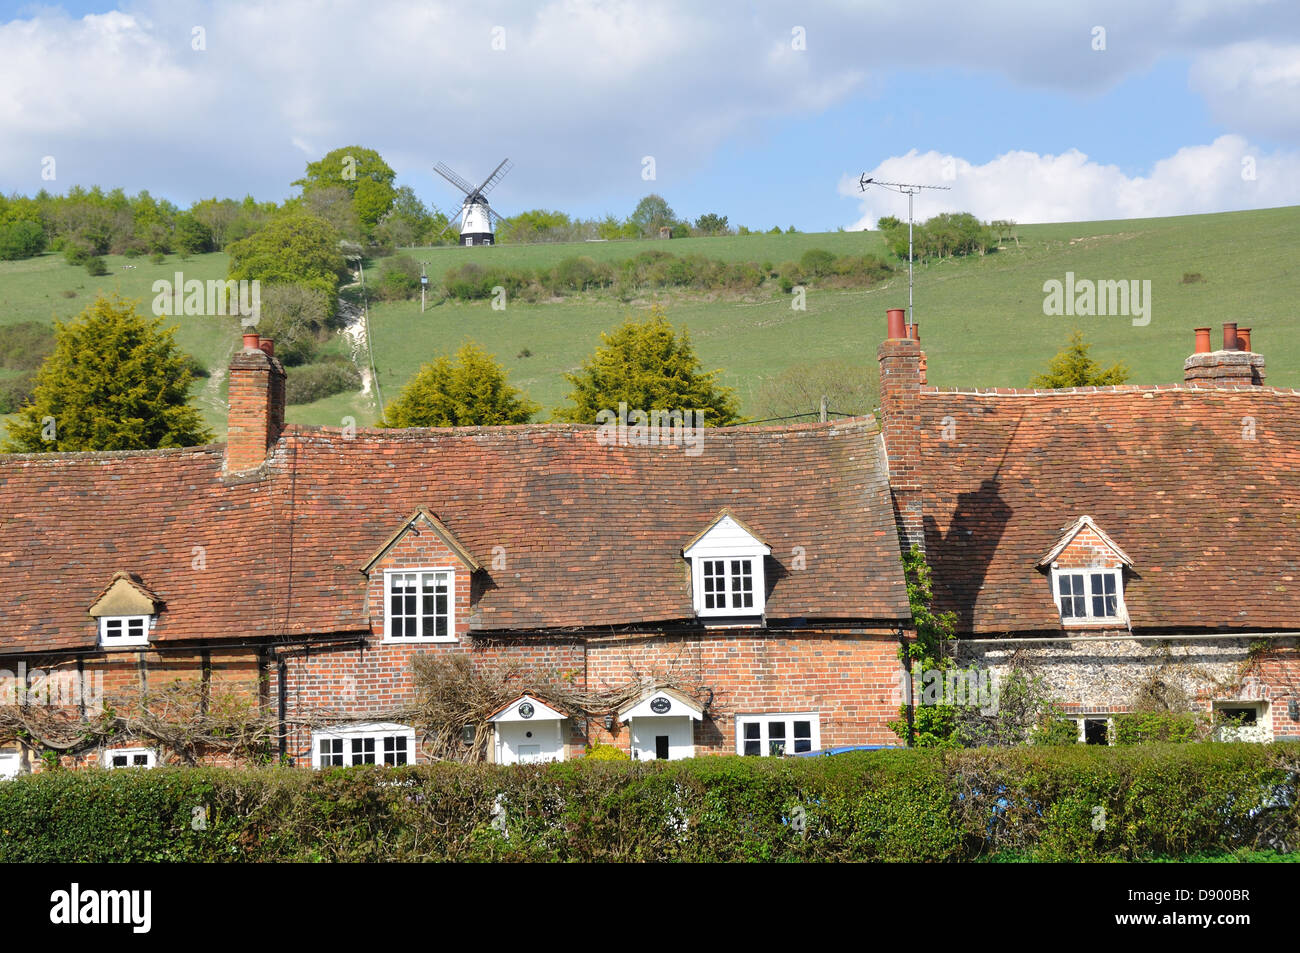 Turville Village, Buckinghamshire, U.K. - Stock Image